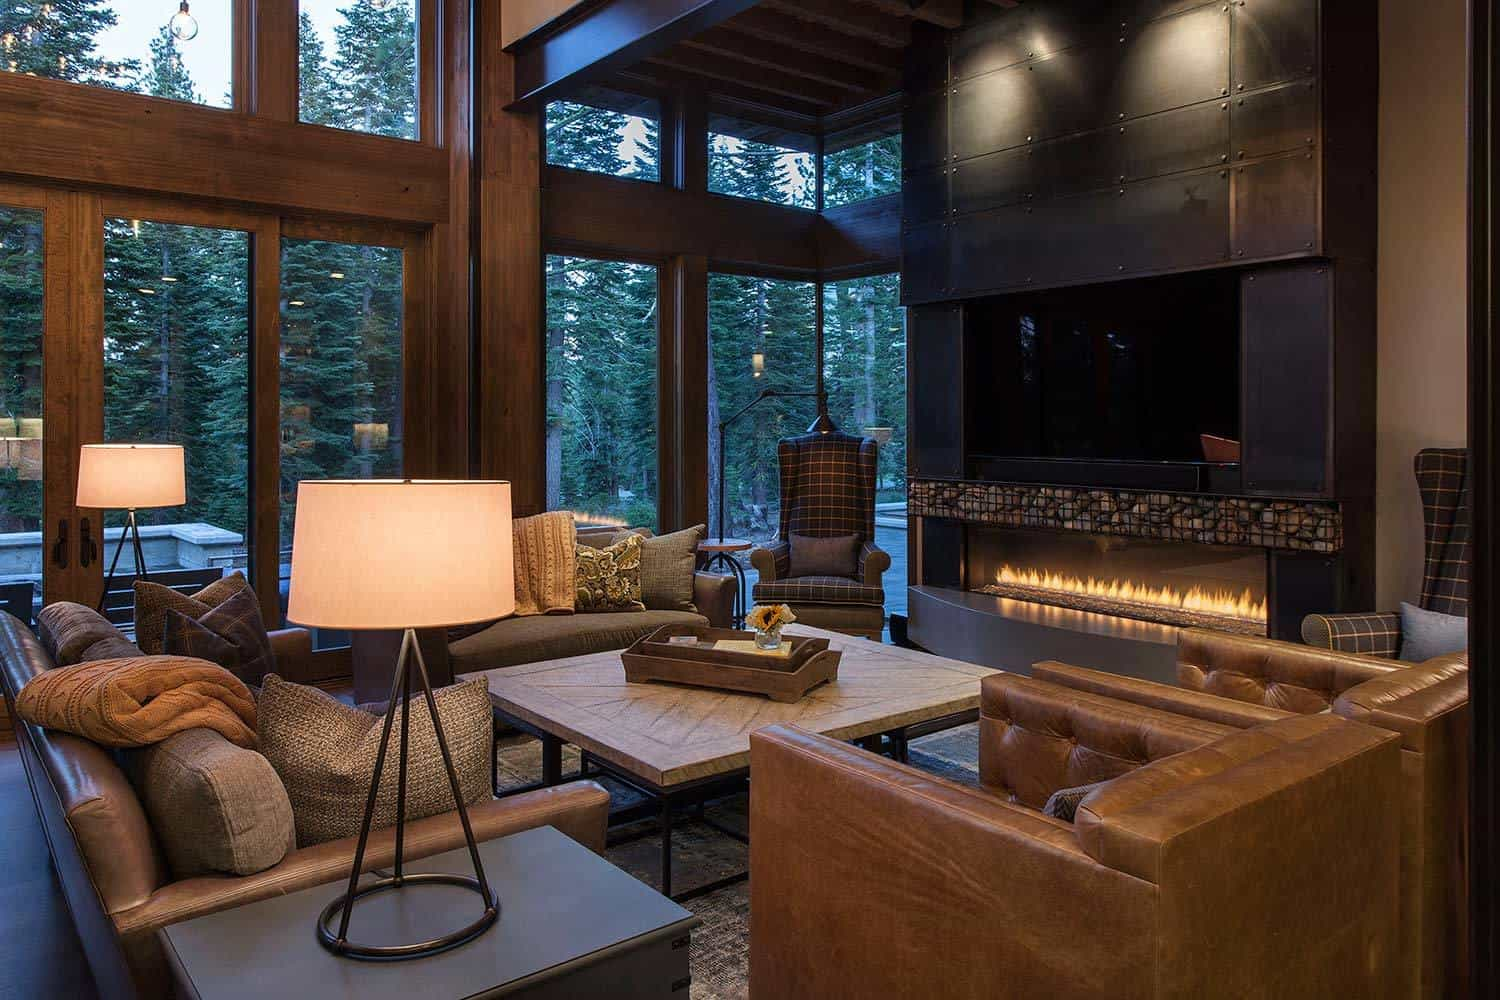 Lake tahoe getaway features contemporary barn aesthetic for Interior designs houses pictures